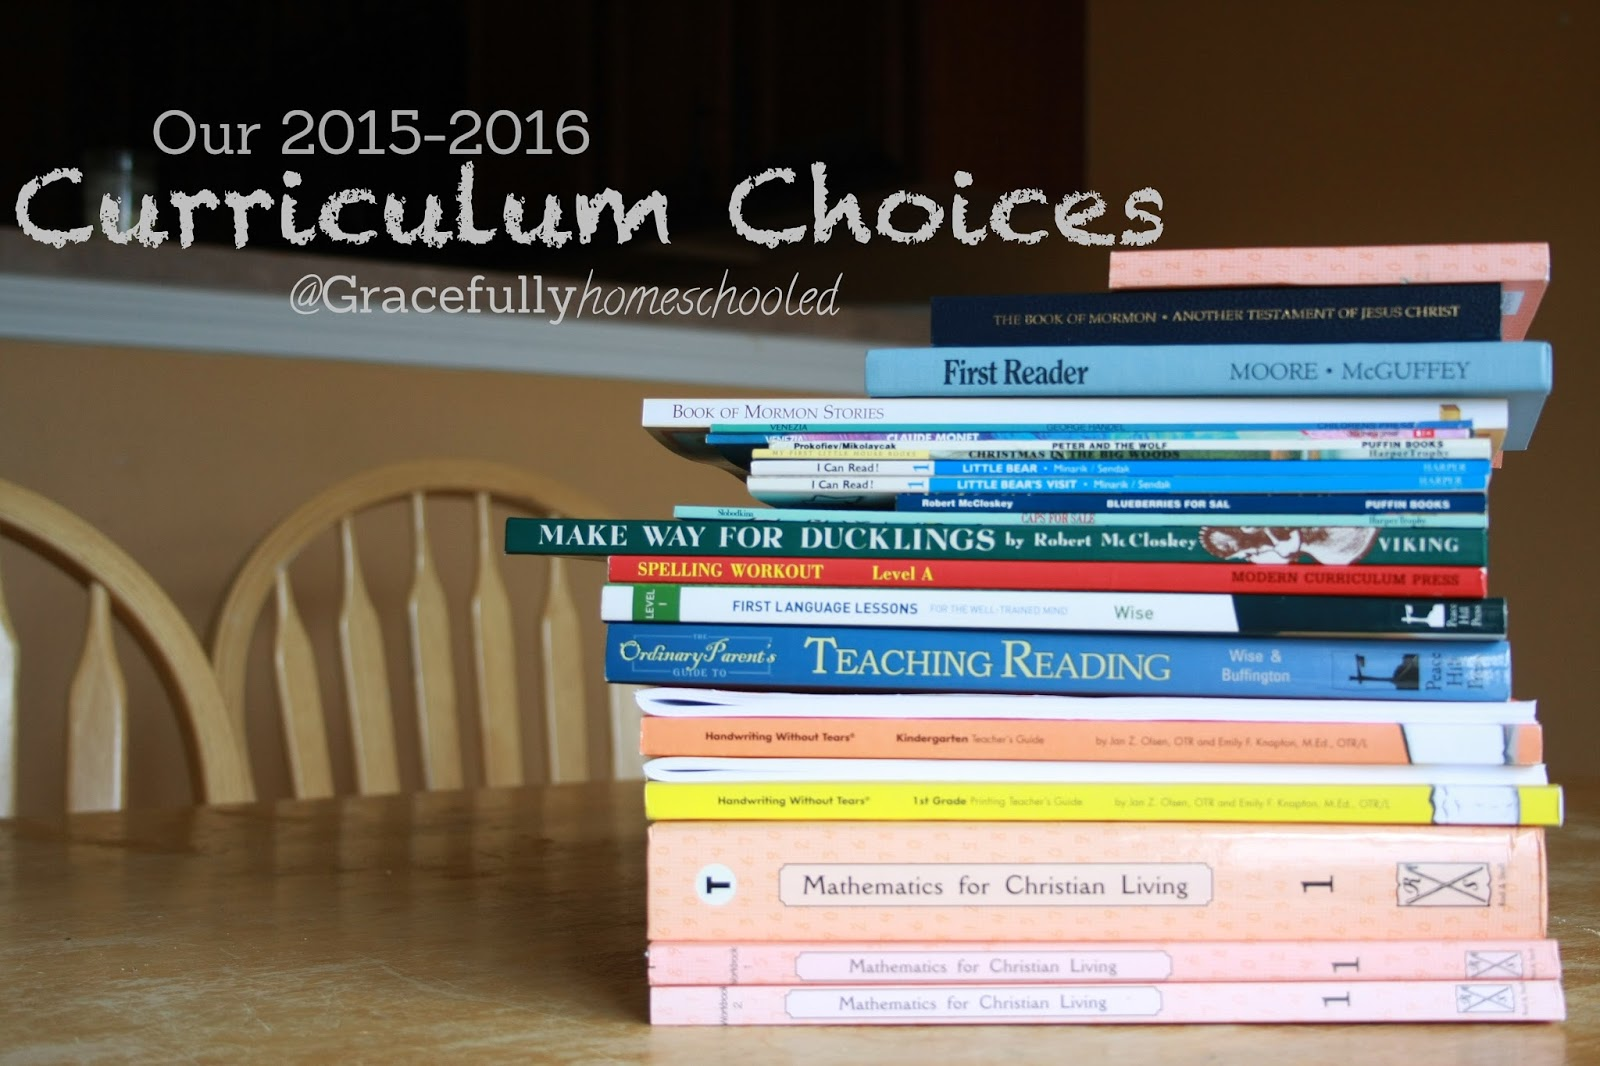 Gracefully Homeschooled: Our Curriculum